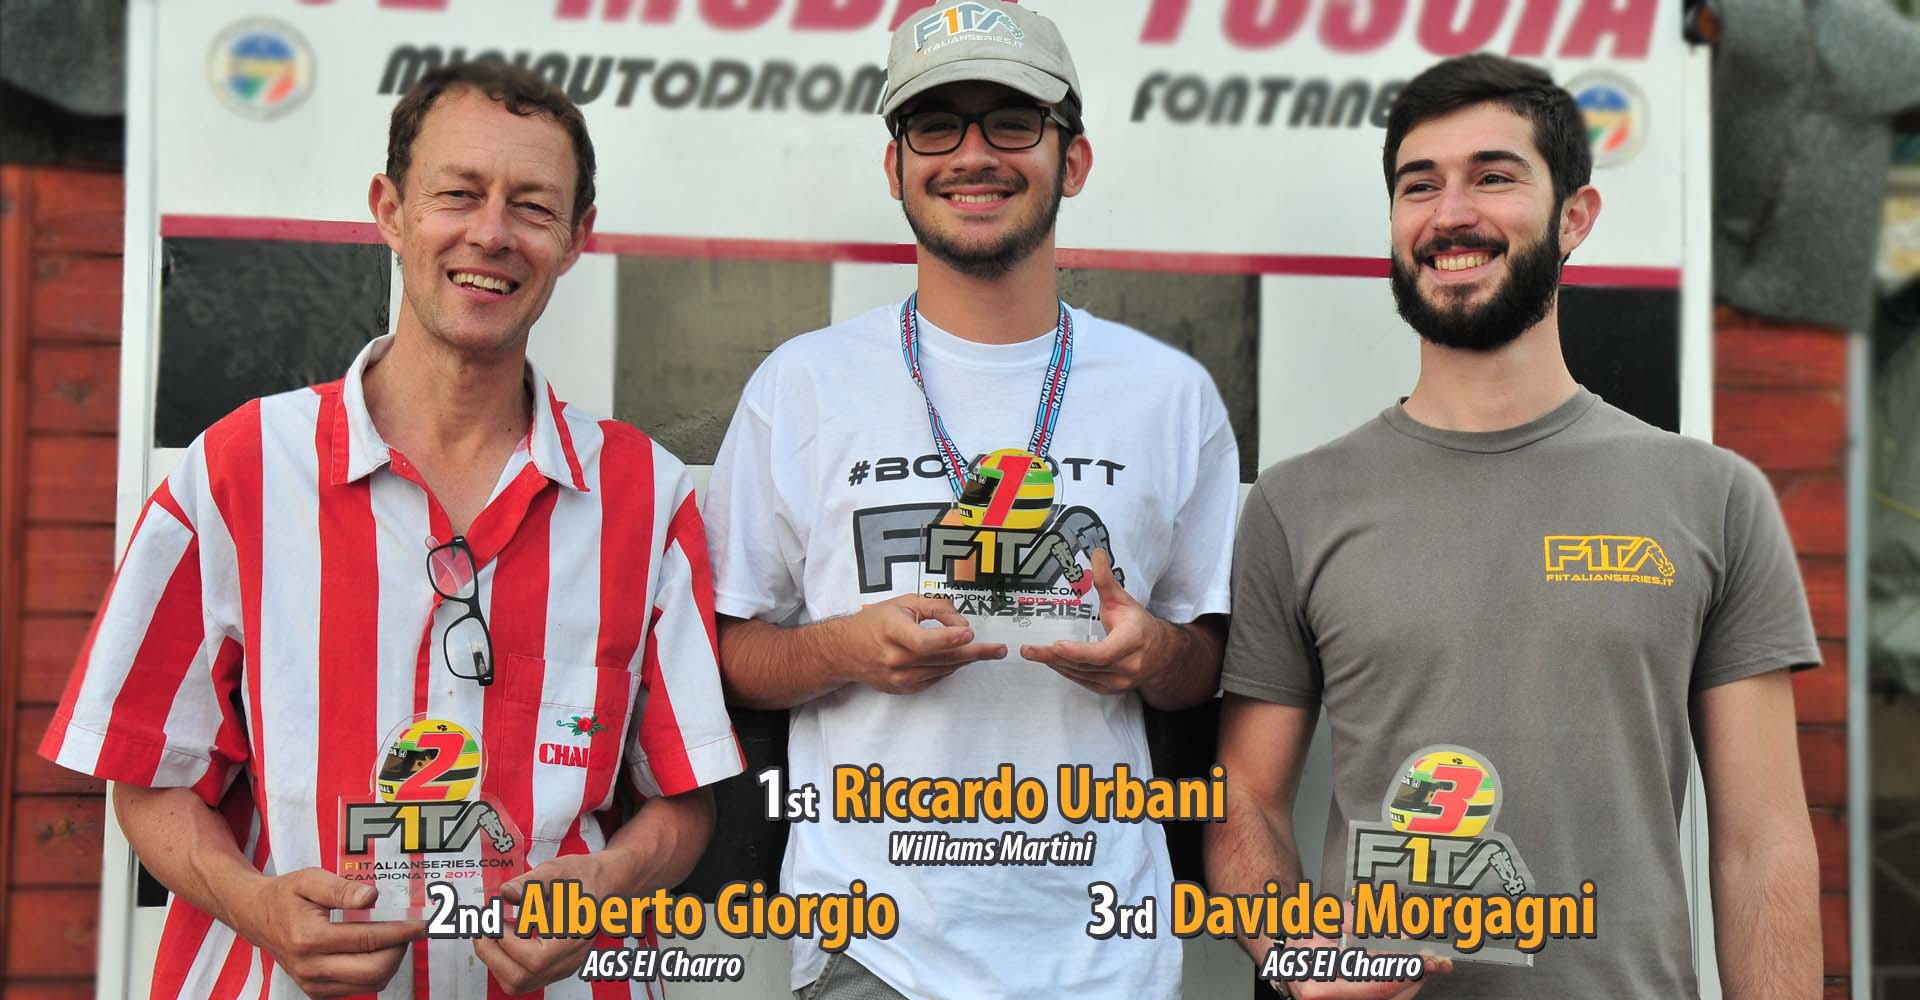 Winner Drivers F1ITA F1italianseries